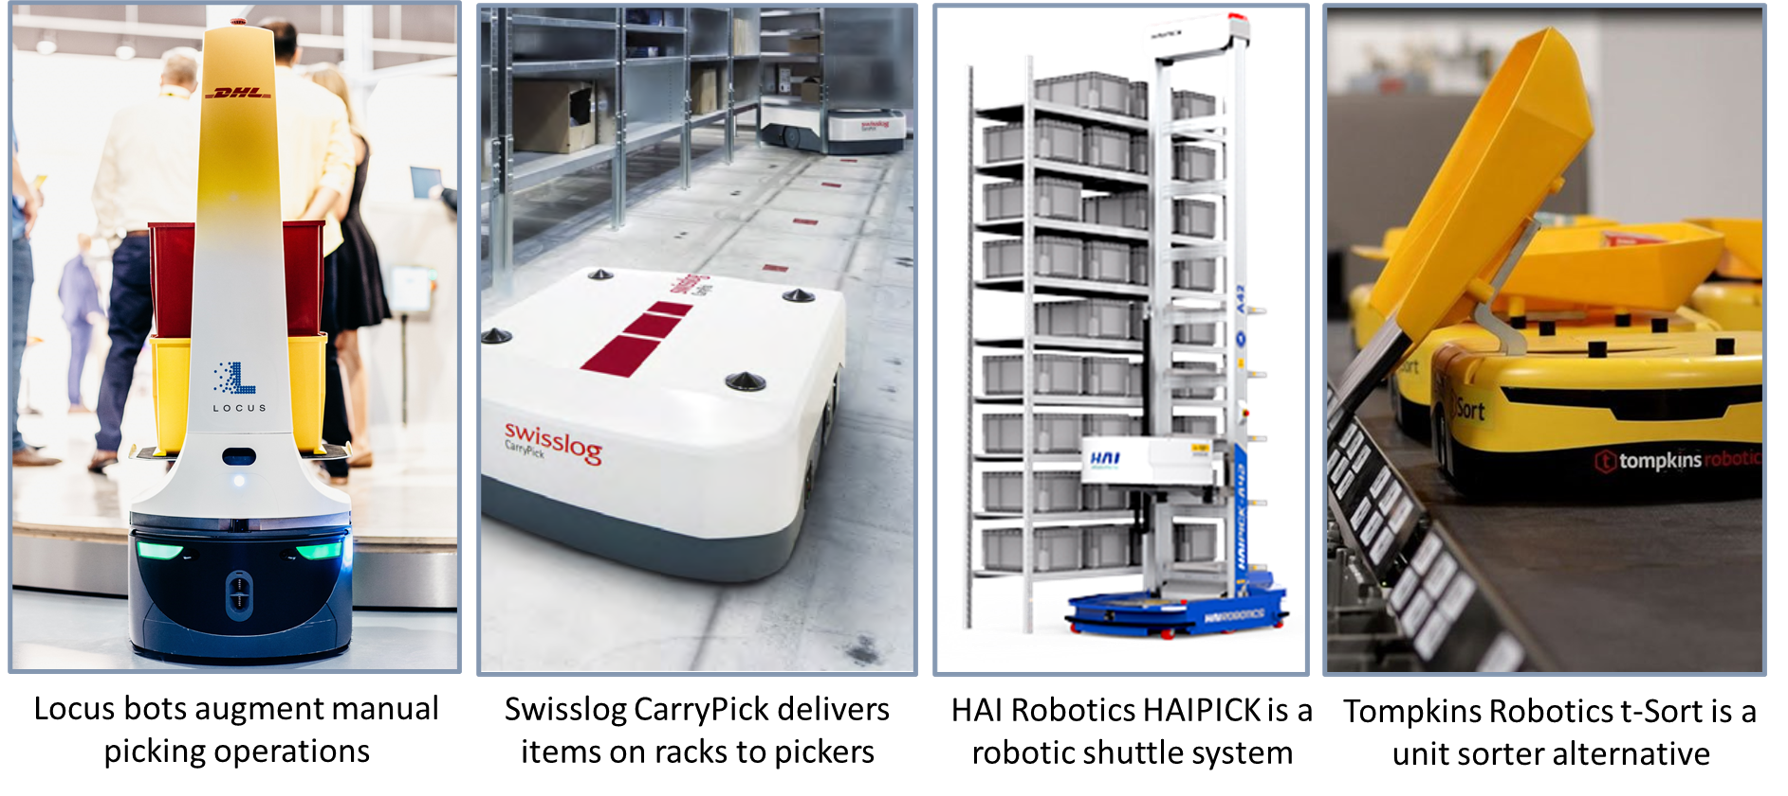 mobile warehouse robotics solutions manual support, goods-to-man, AS/RS, and robotic sortation